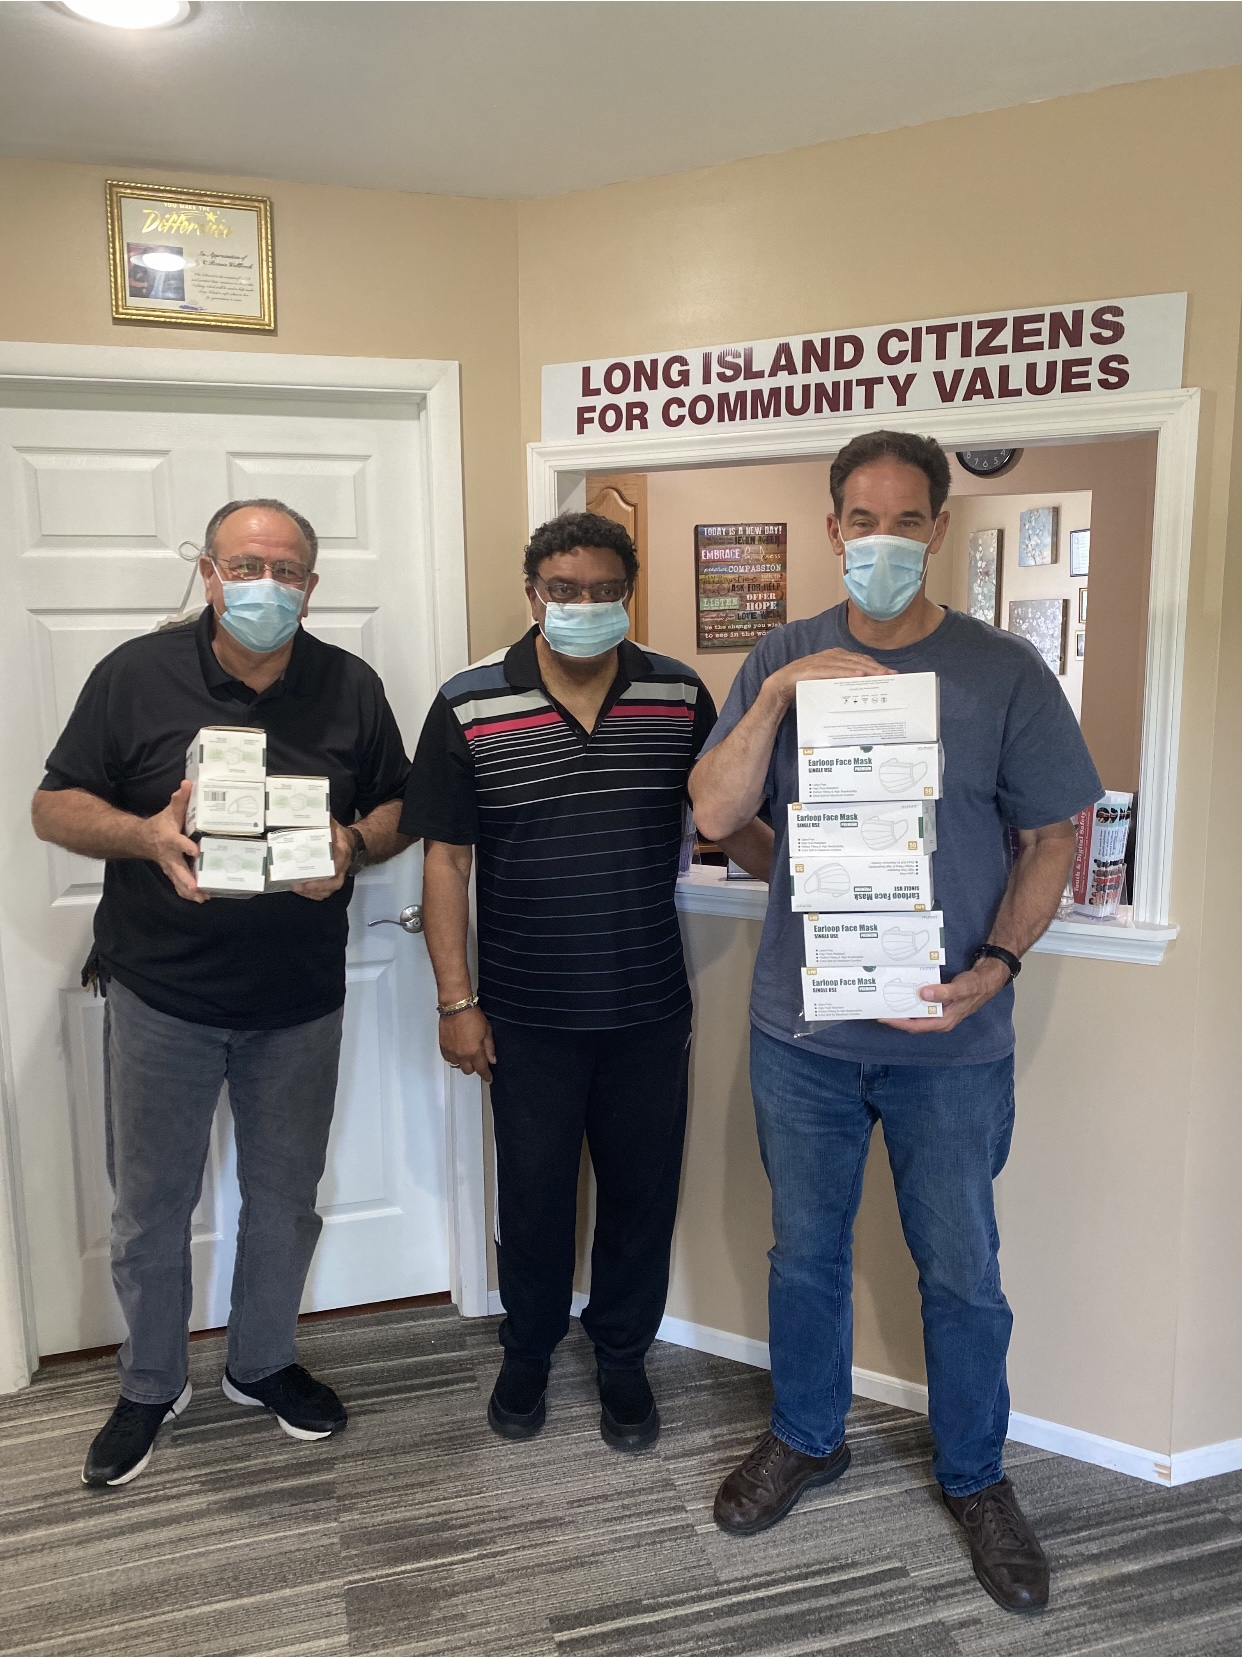 Getting Masks Out To Suffolk Community, Pastor Phil Cali, Sayville And Pastor Scott Ingvaldsen, Smithtown.